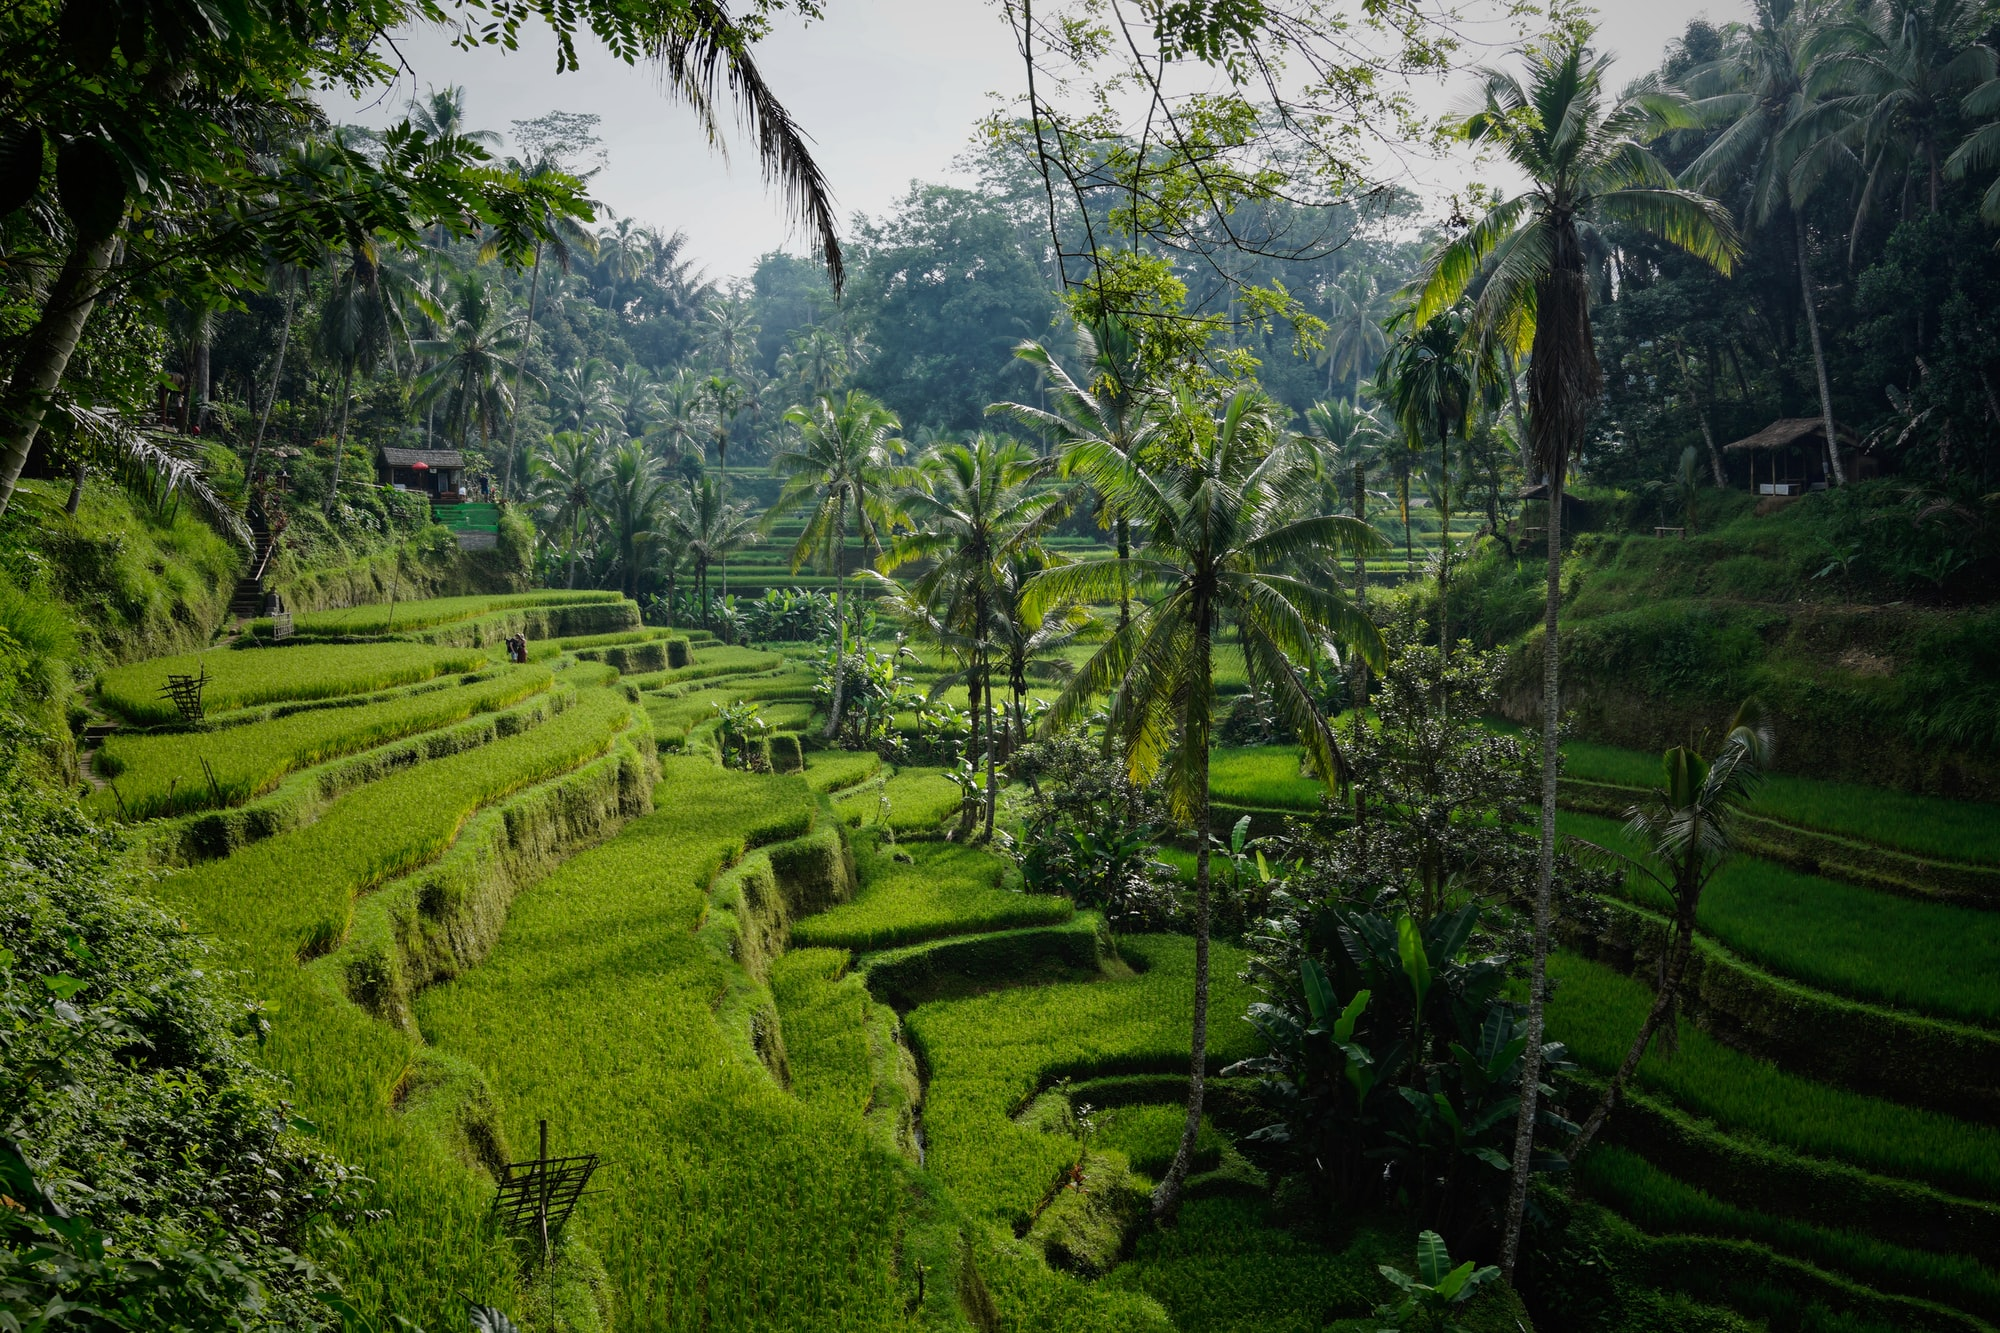 For a tourist visiting Indonesia, would it be better to try Java or Bali first?